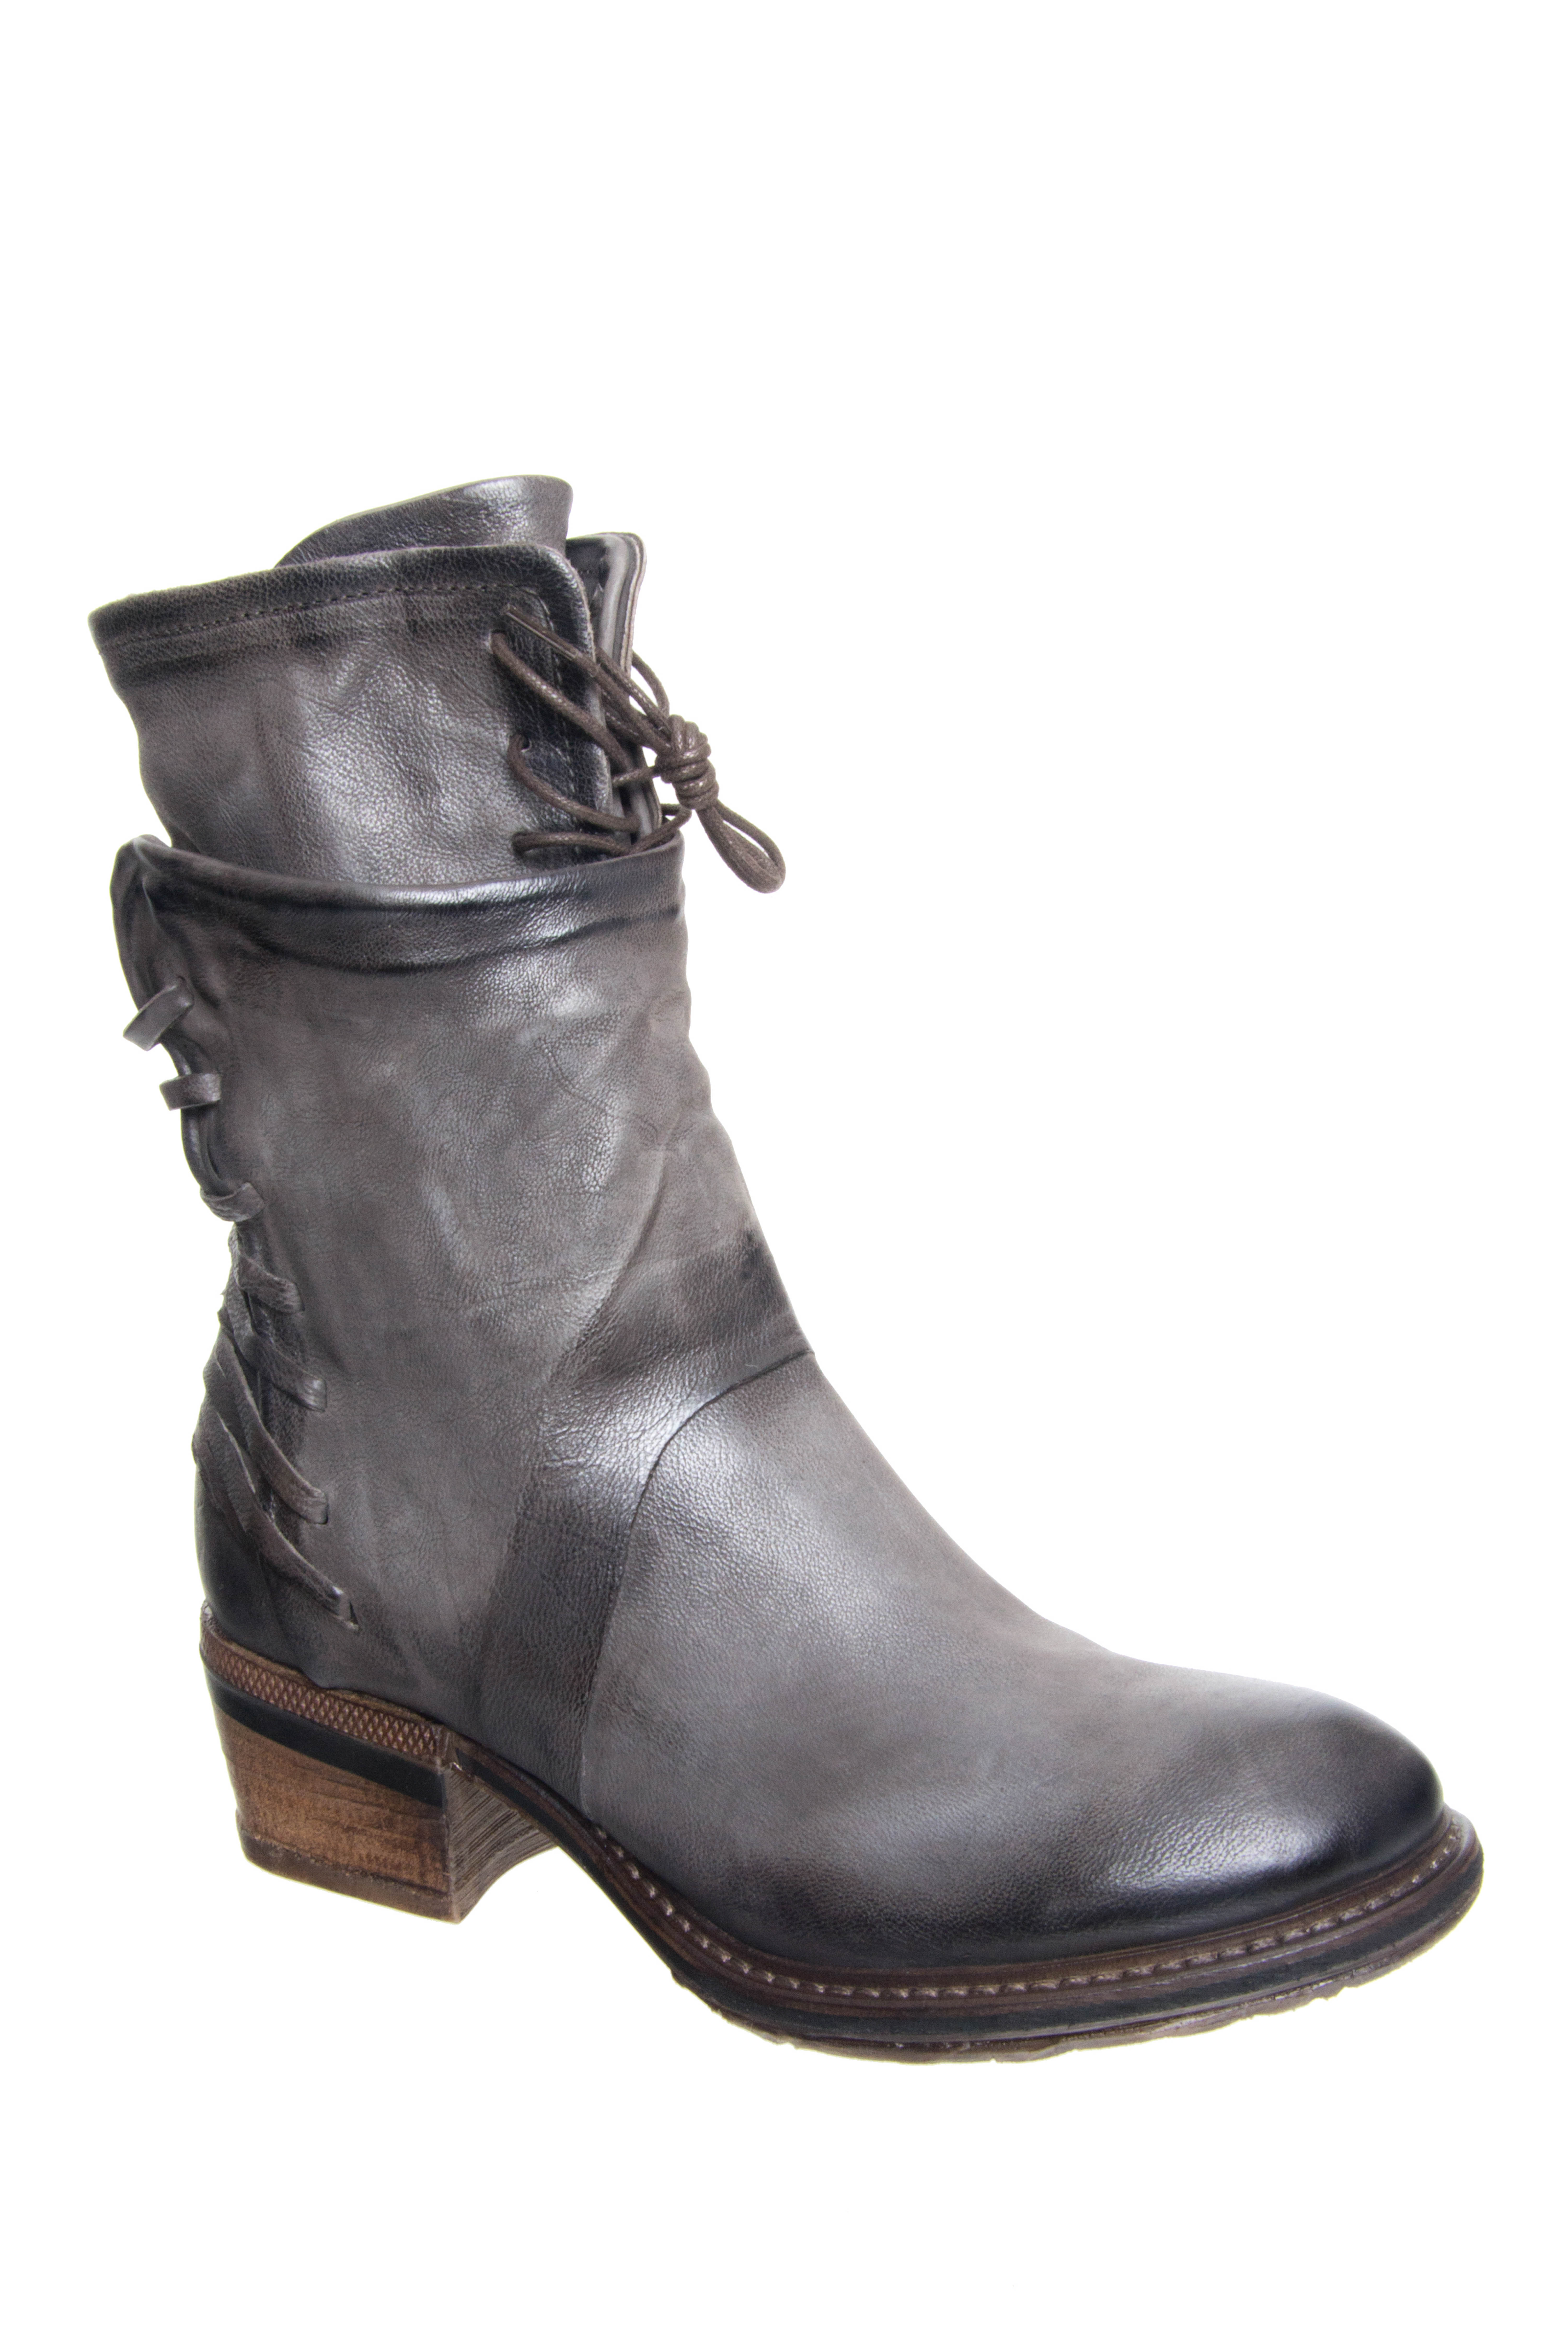 A.S.98 Chet Mid Heel Boots - Smoke